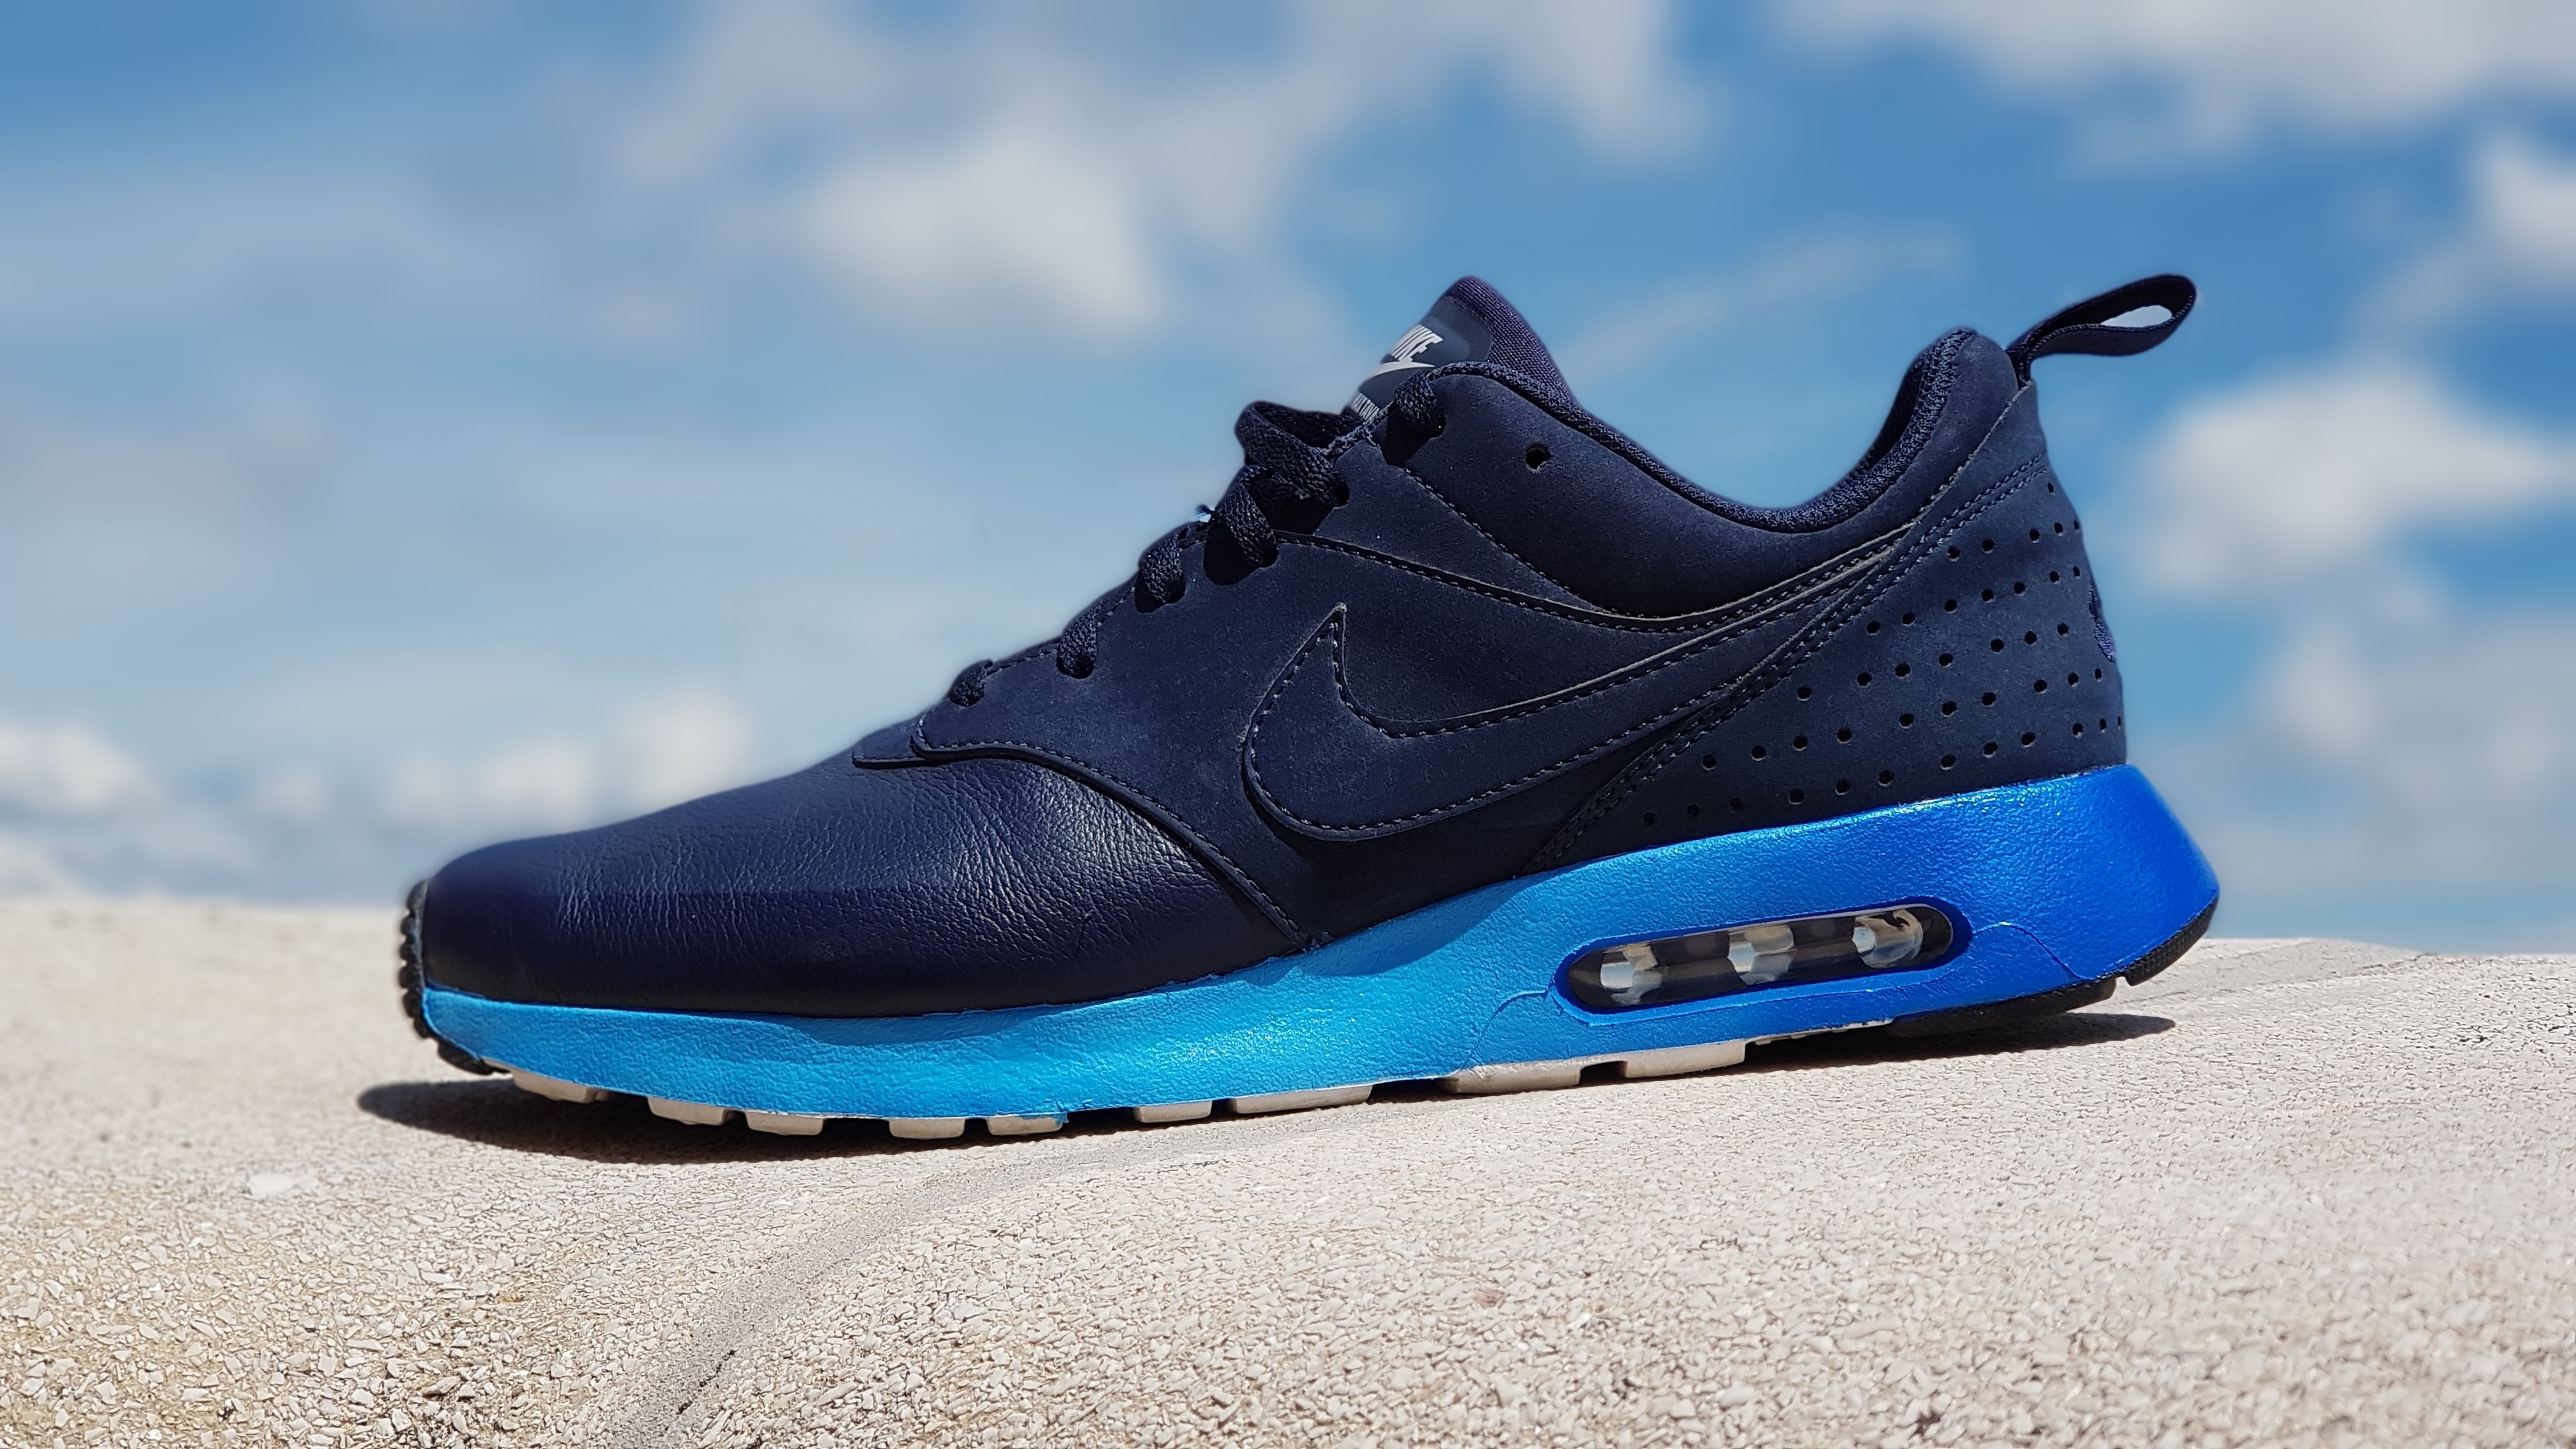 Pin by Zedraw Customize on Nike Air Max 180 Ultramarine with